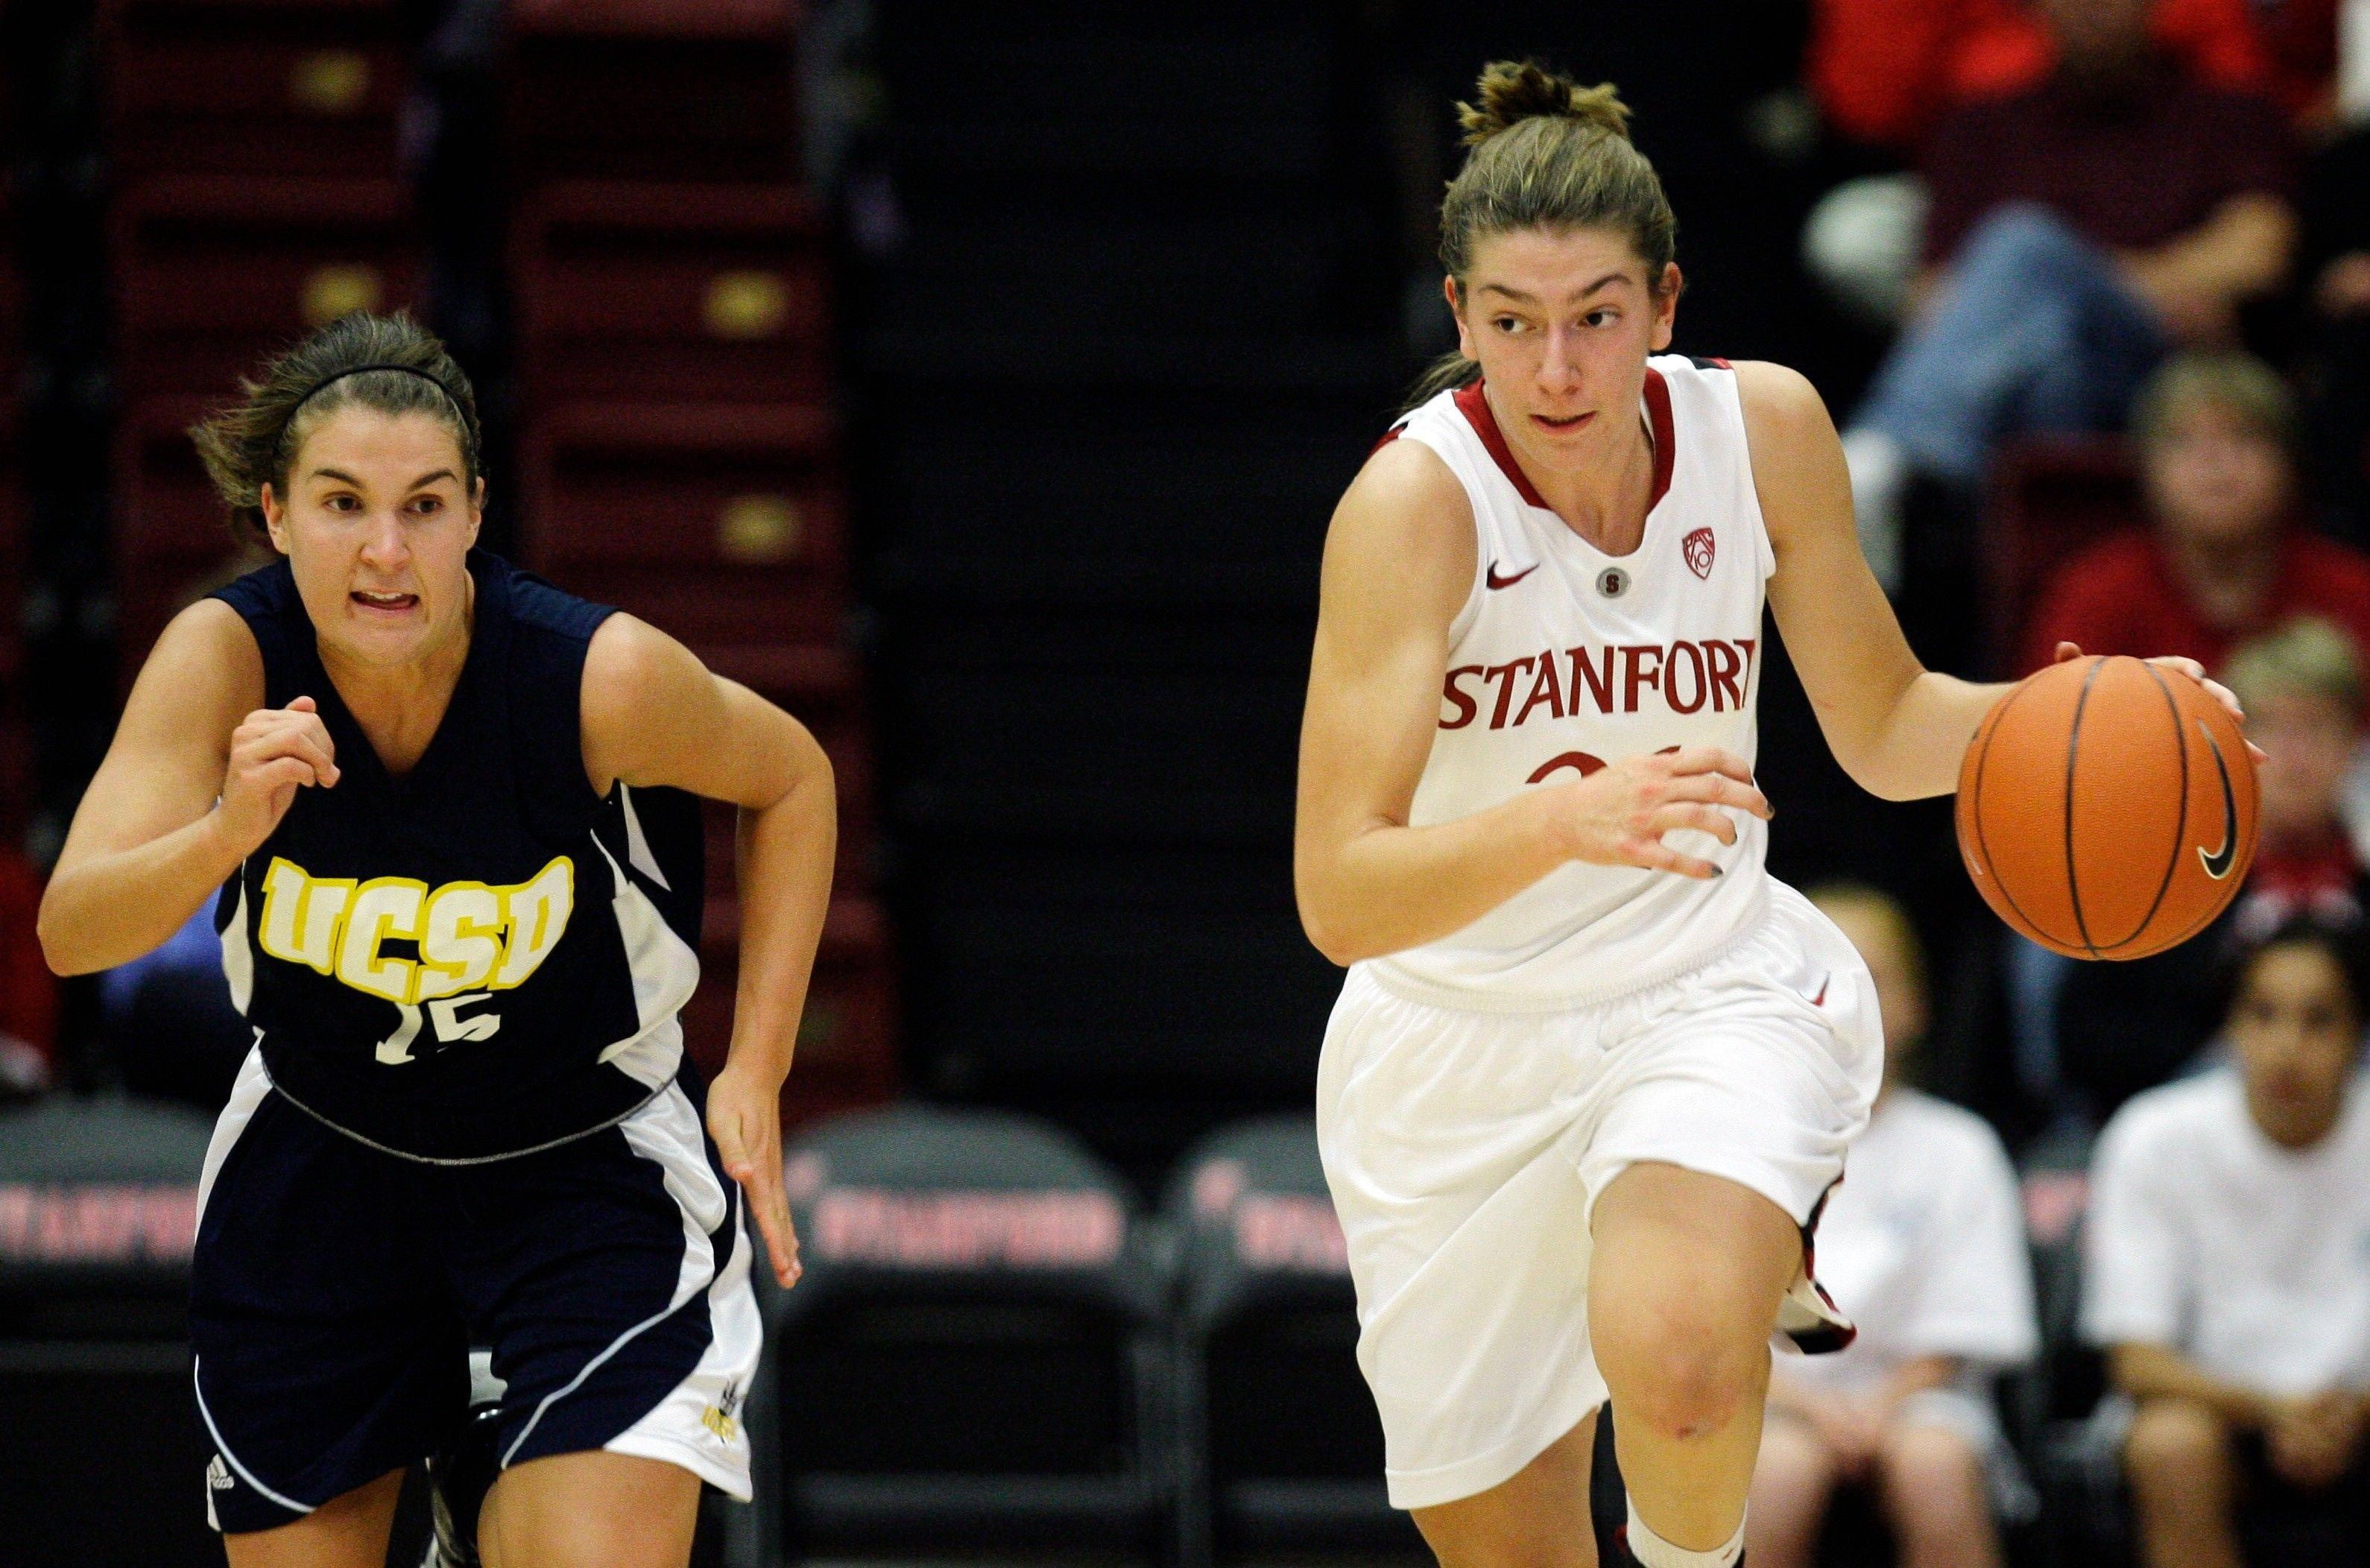 Stanford's coach says the No. 3-ranked team needs the speed of Toni Kokenis, a former Daily Herald All-Area captain at Hinsdale Central.